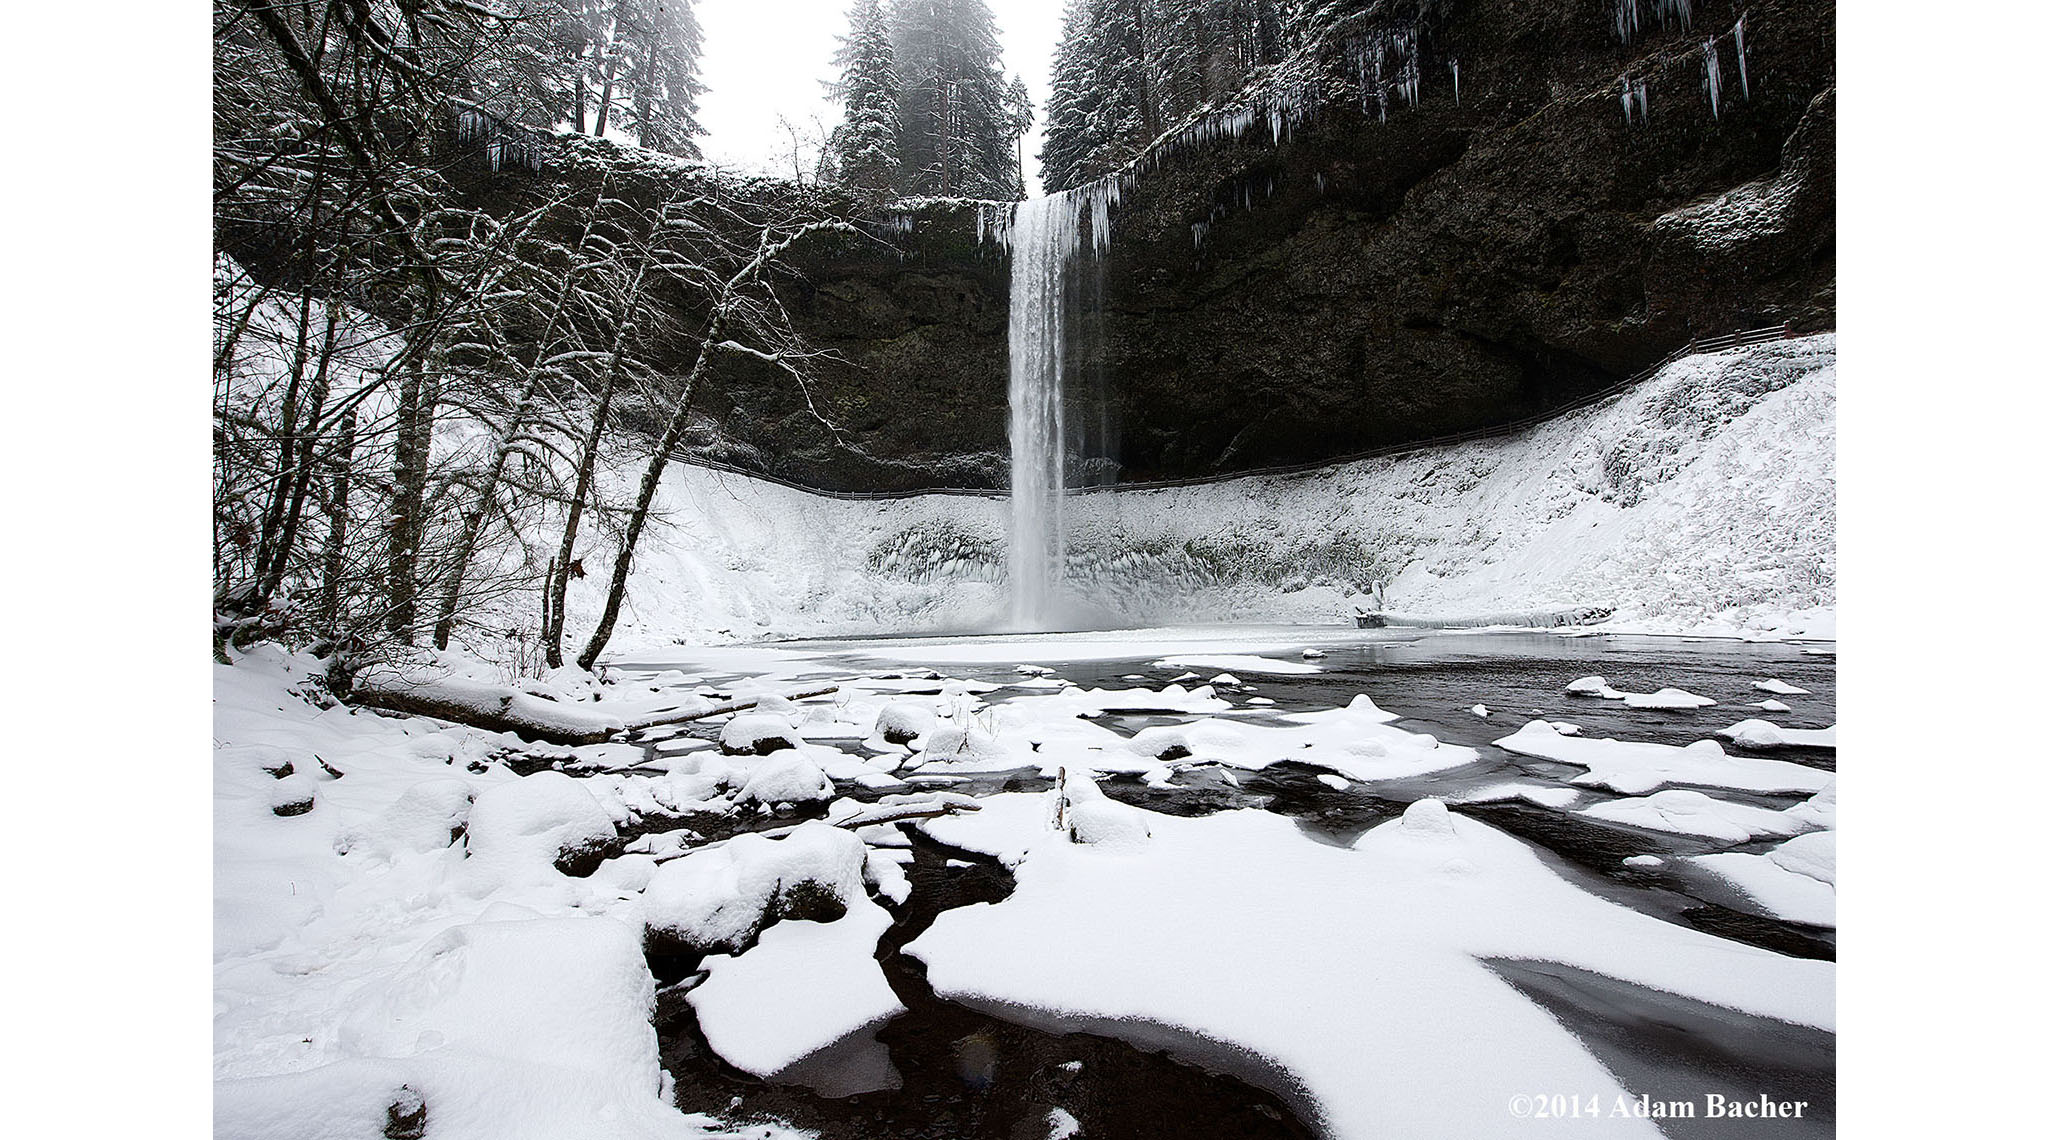 waterfalls at silver falls state park oregon